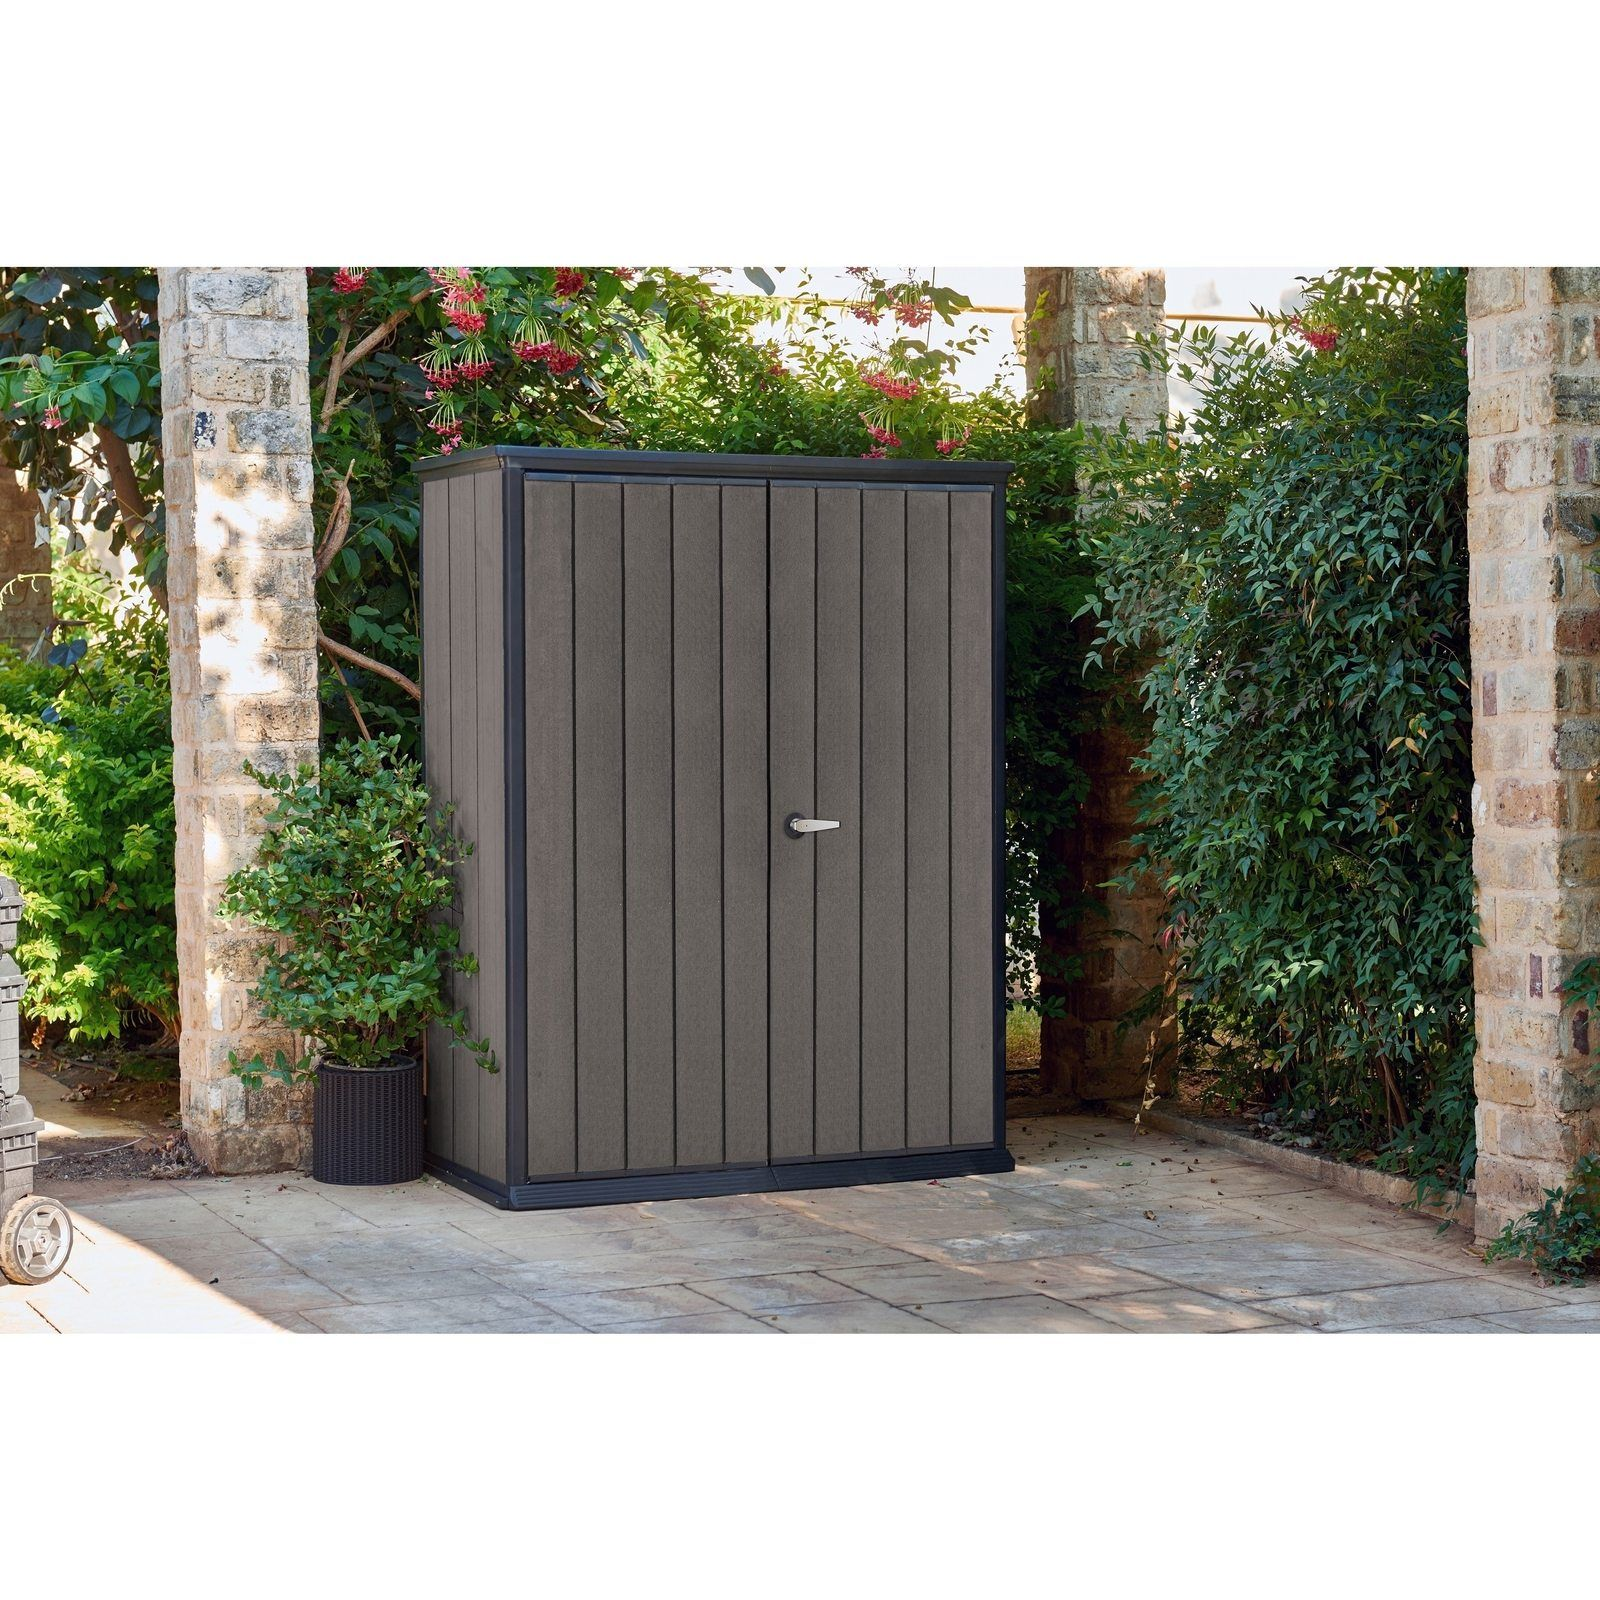 Storage Shed Outdoor Garden Patio Pool Backyard Organizer